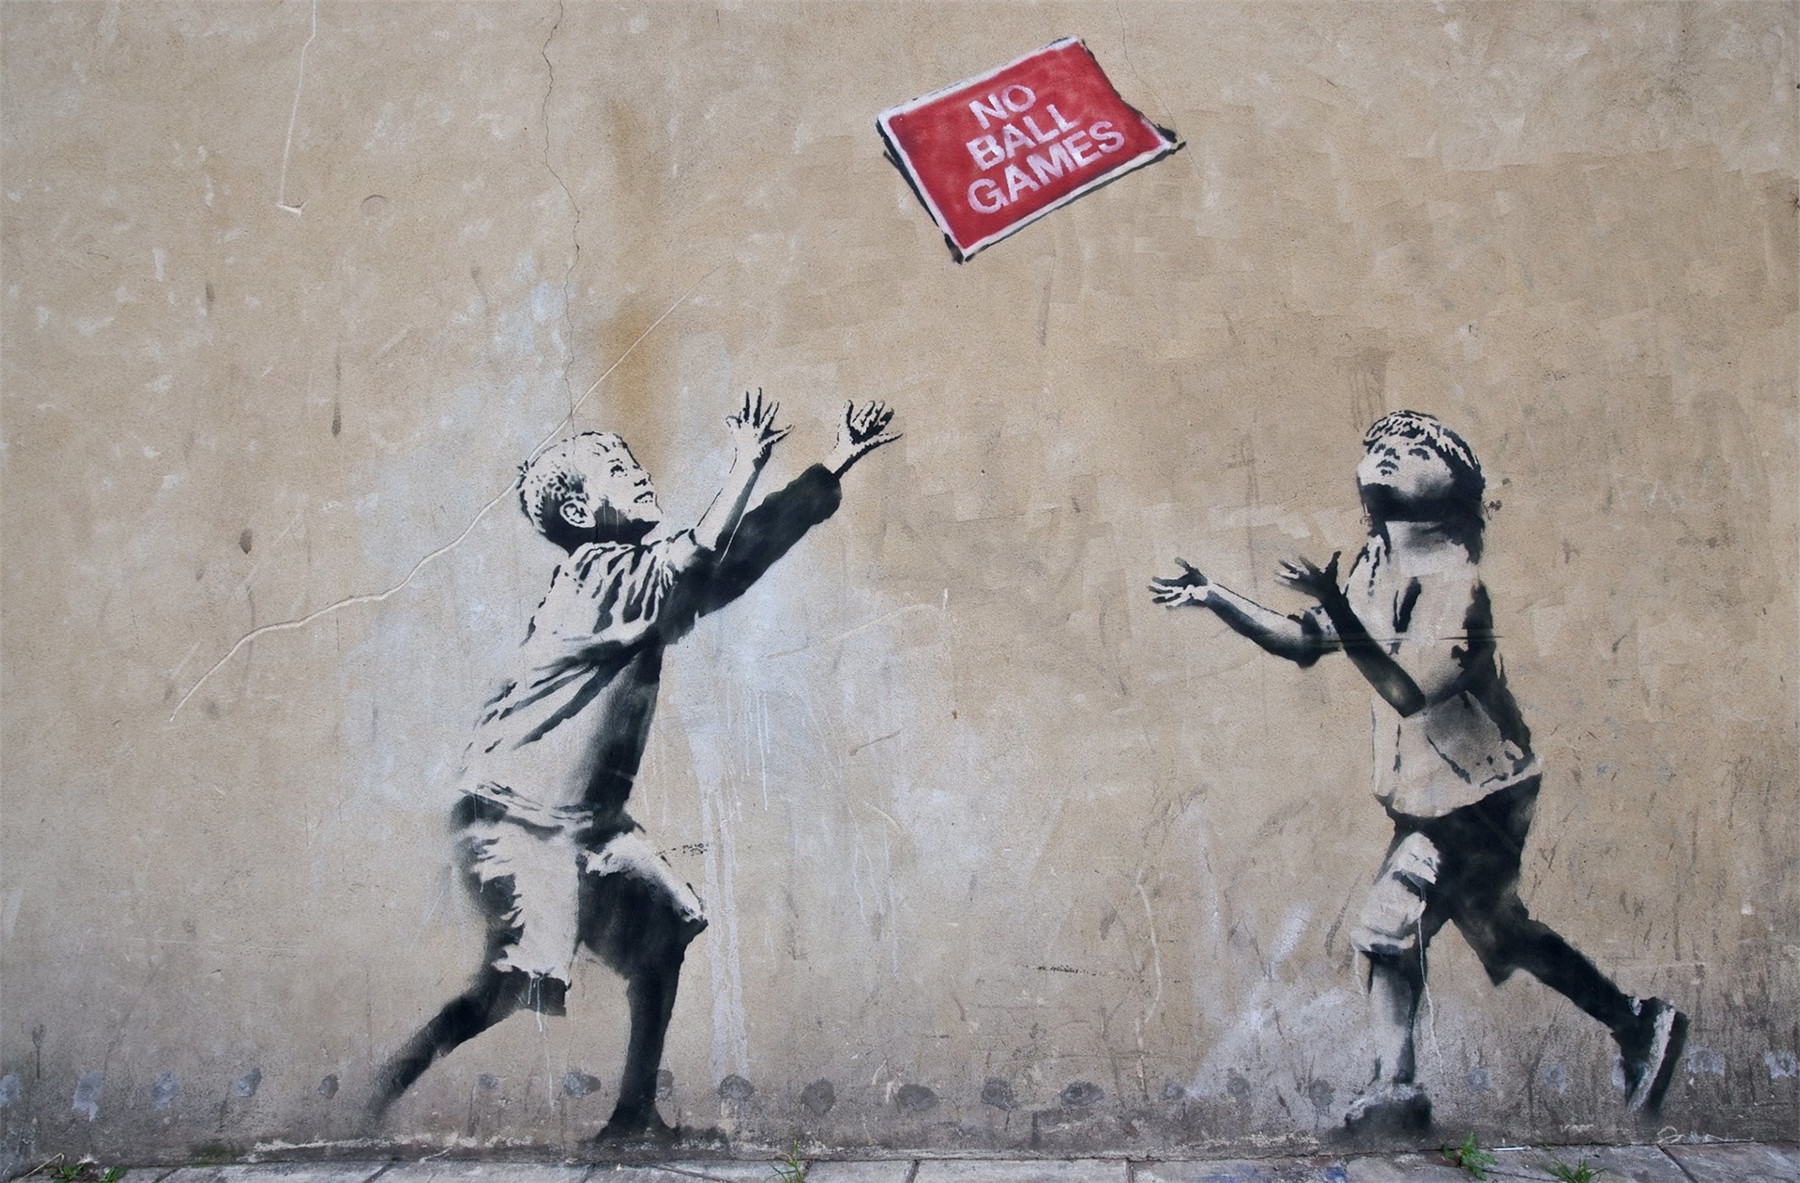 Banksy Kids No Ball Games Peace Hope Wall Painting Street Artwork Graffiti Wall Art Posters and Prints Cuadros Decoracion Quotes